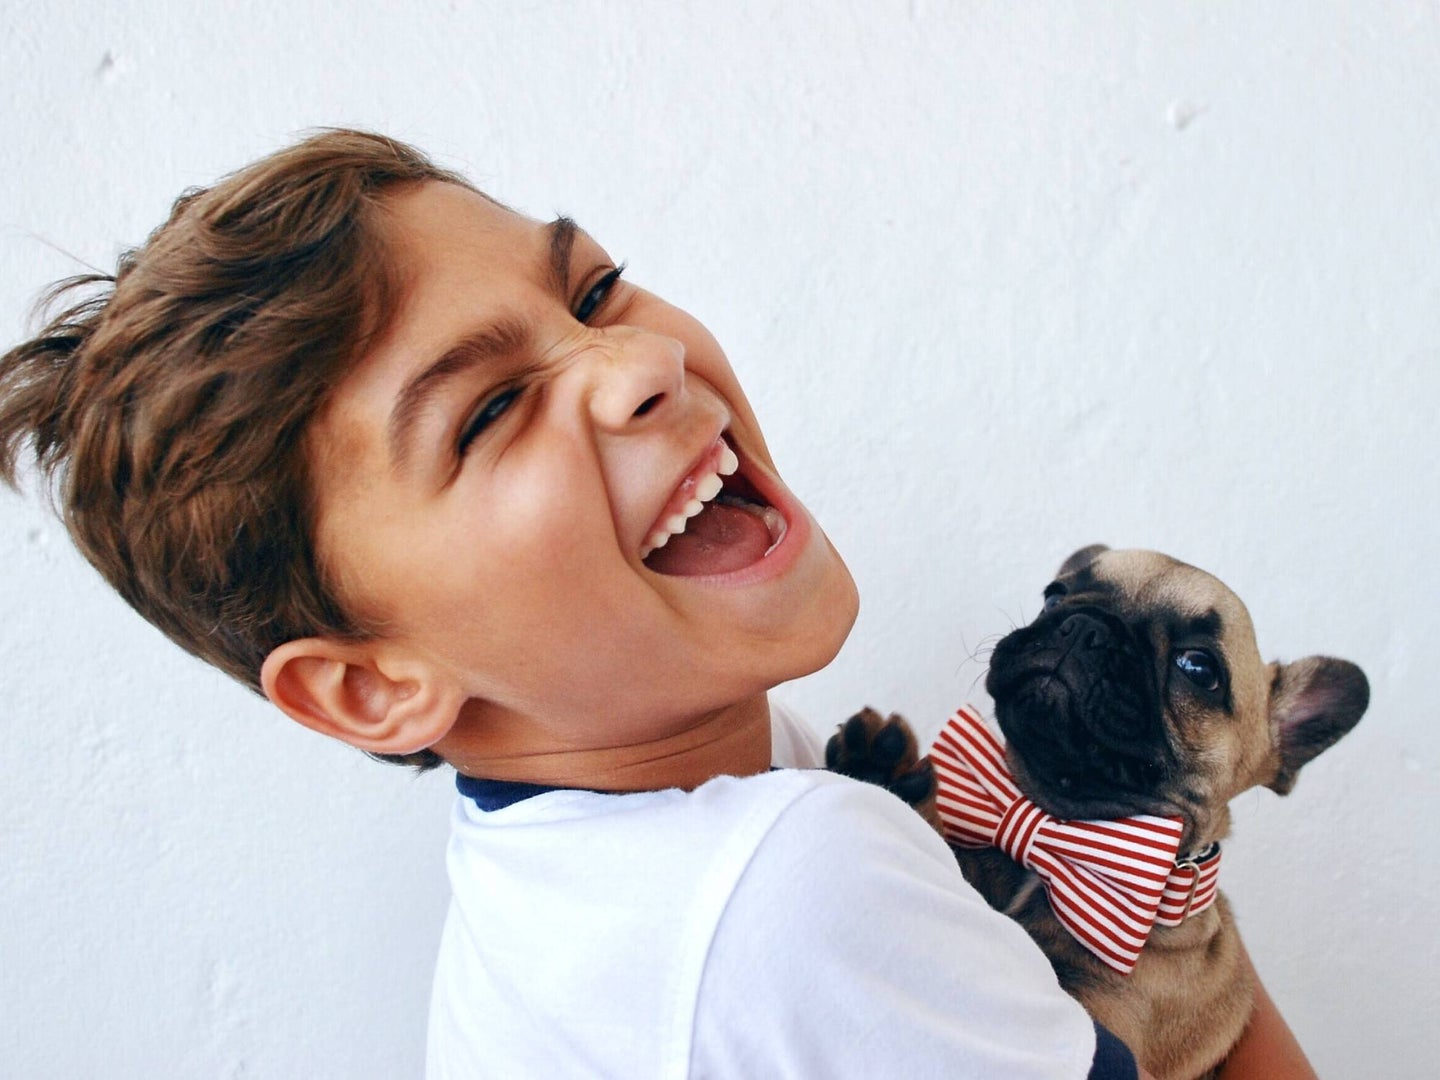 kid holding puppy laughing